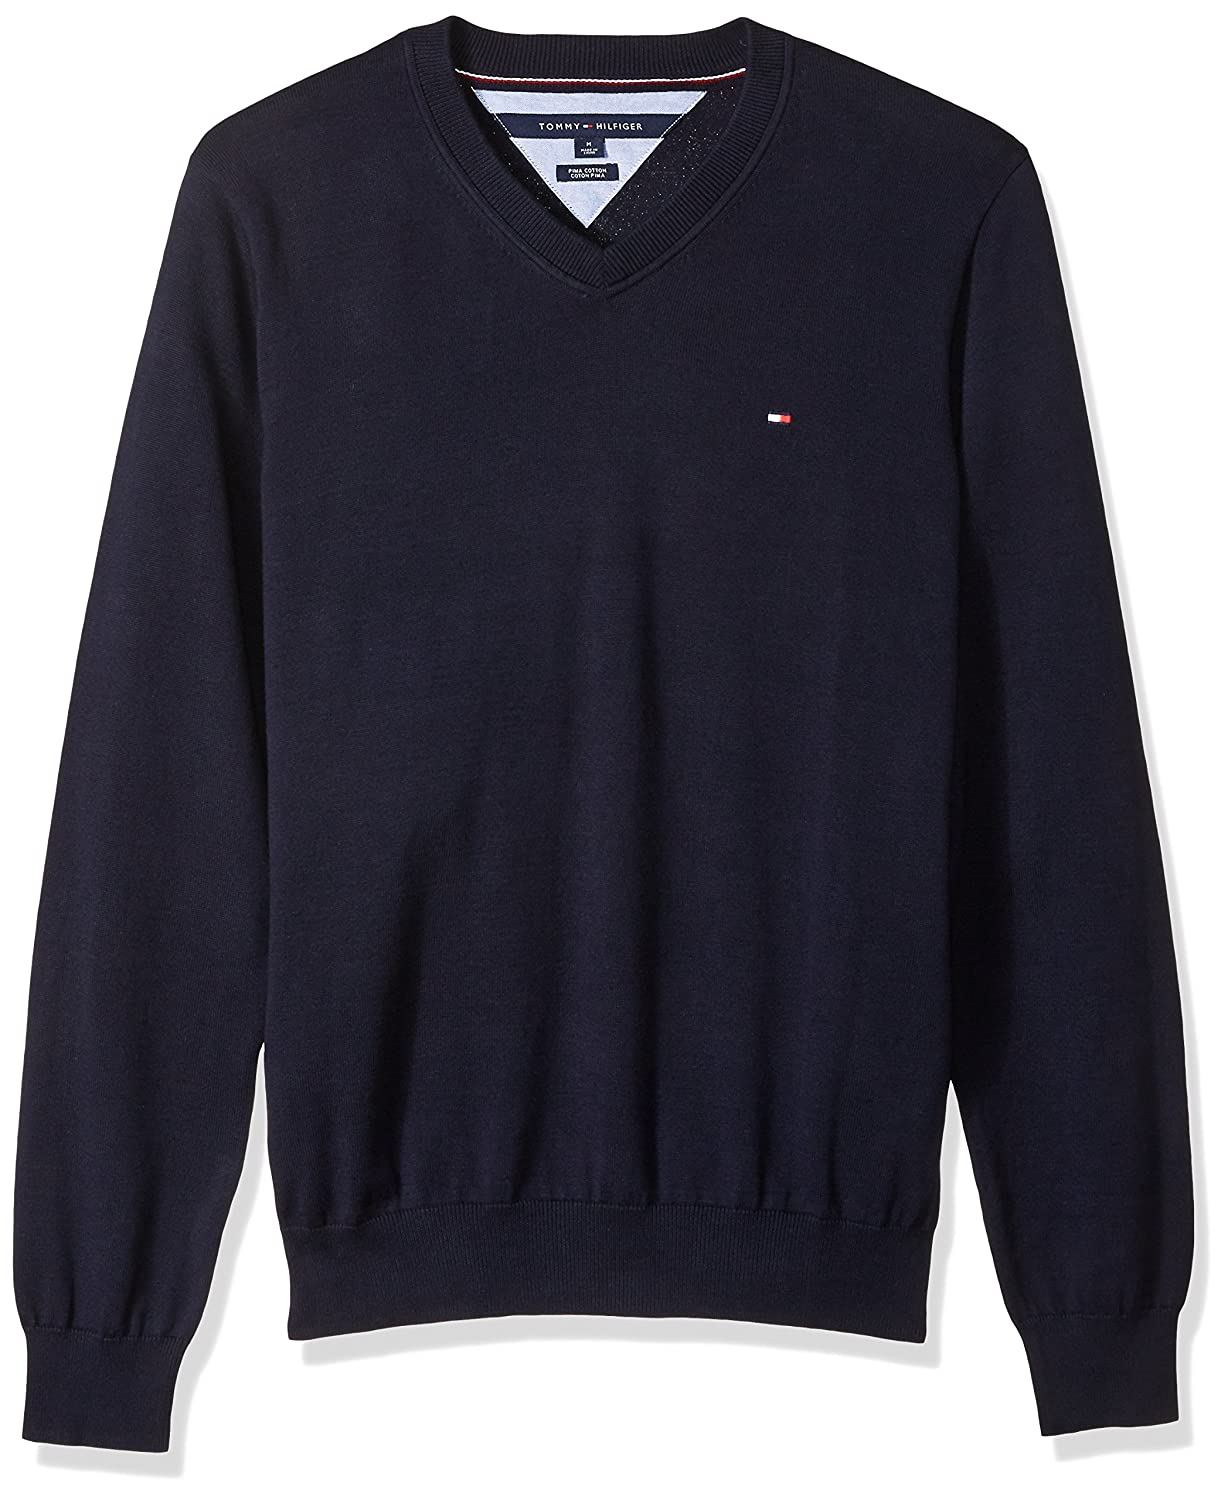 Tommy Hilfiger Mens Signature Long Sleeve V-Neck Solid Sweater